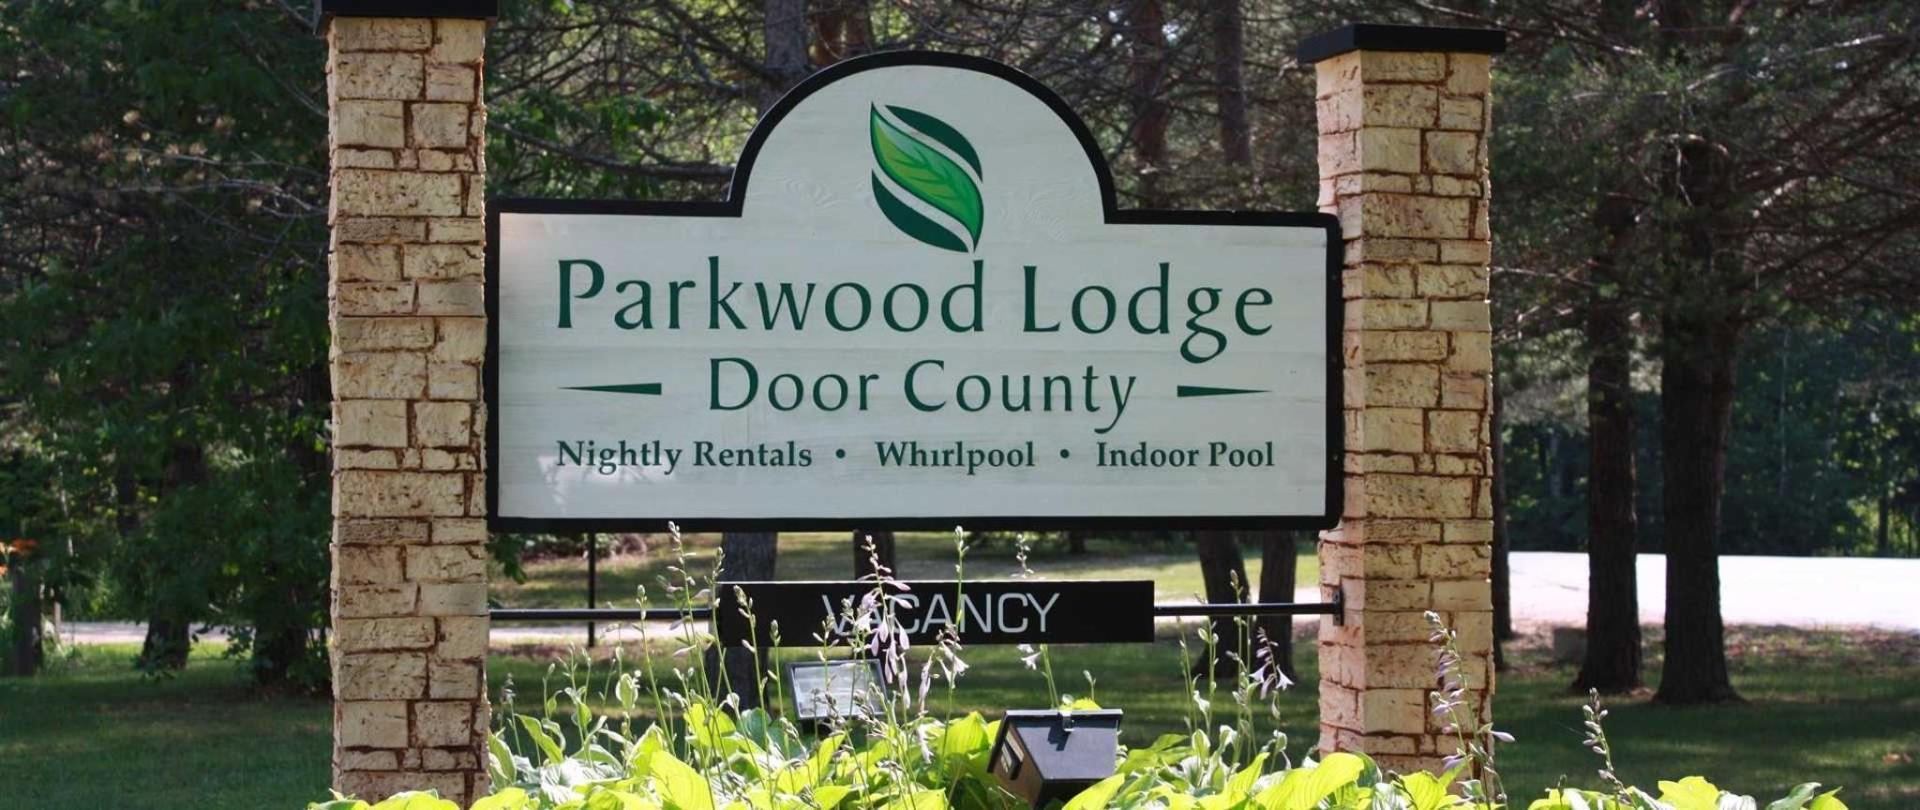 Parkwood Lodge